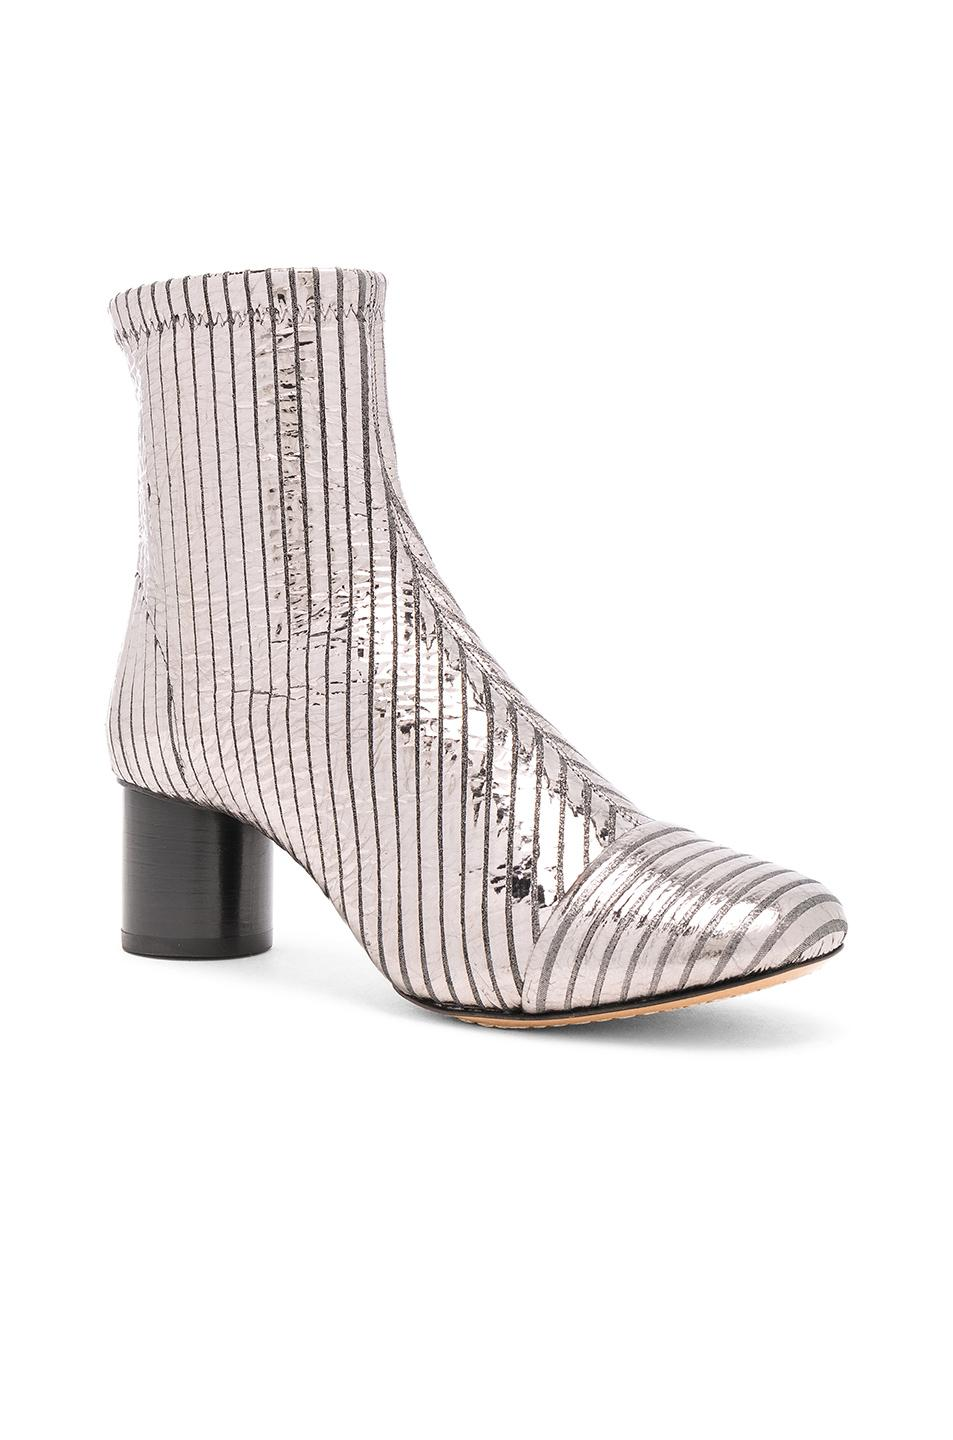 5cad7dc6c20 Isabel Marant - Datsy Metallic Leather Ankle Boots - Lyst. View fullscreen